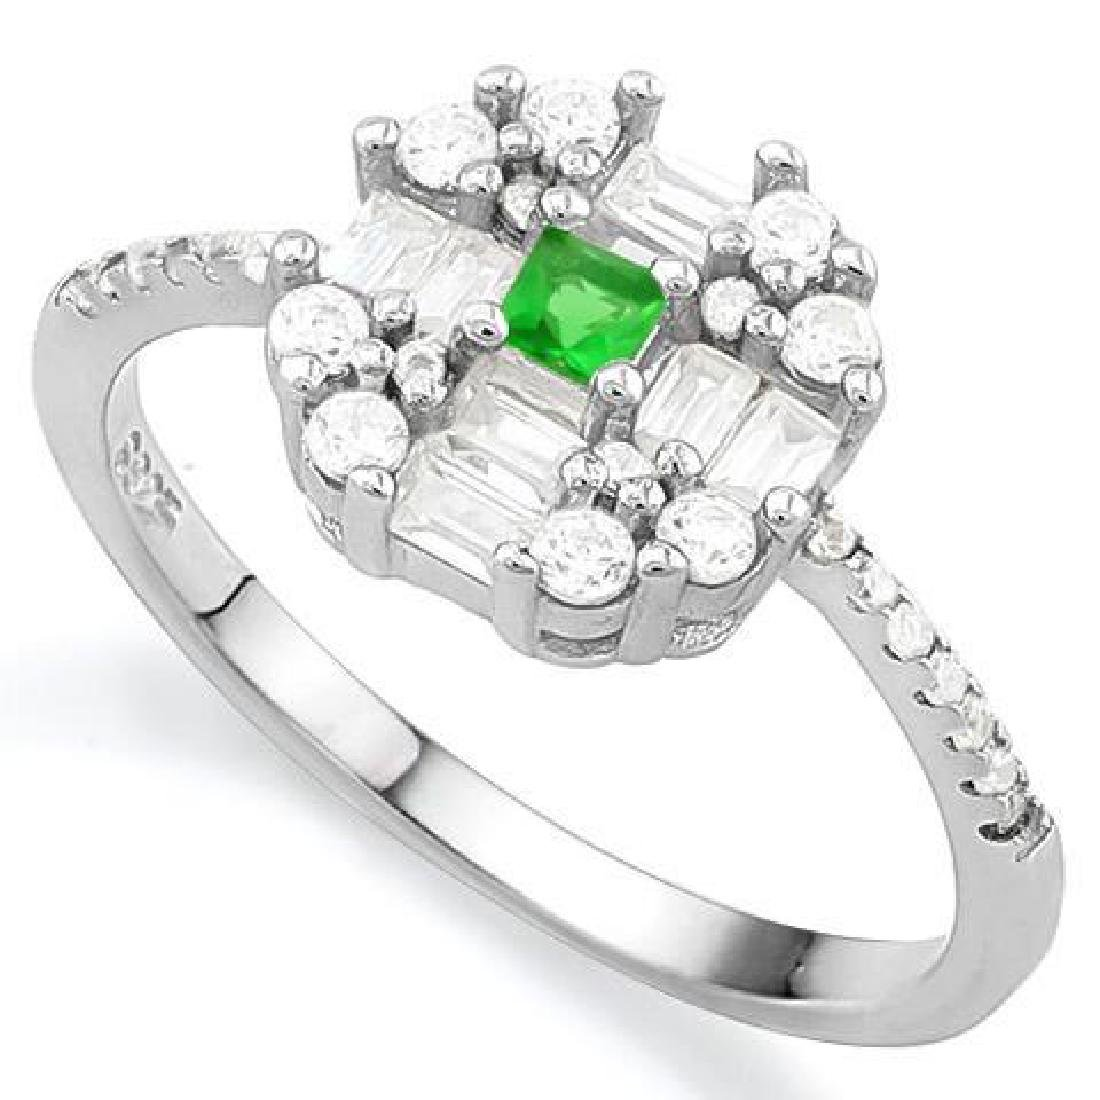 CREATED EMERALD925 STERLING SILVER HALO RING